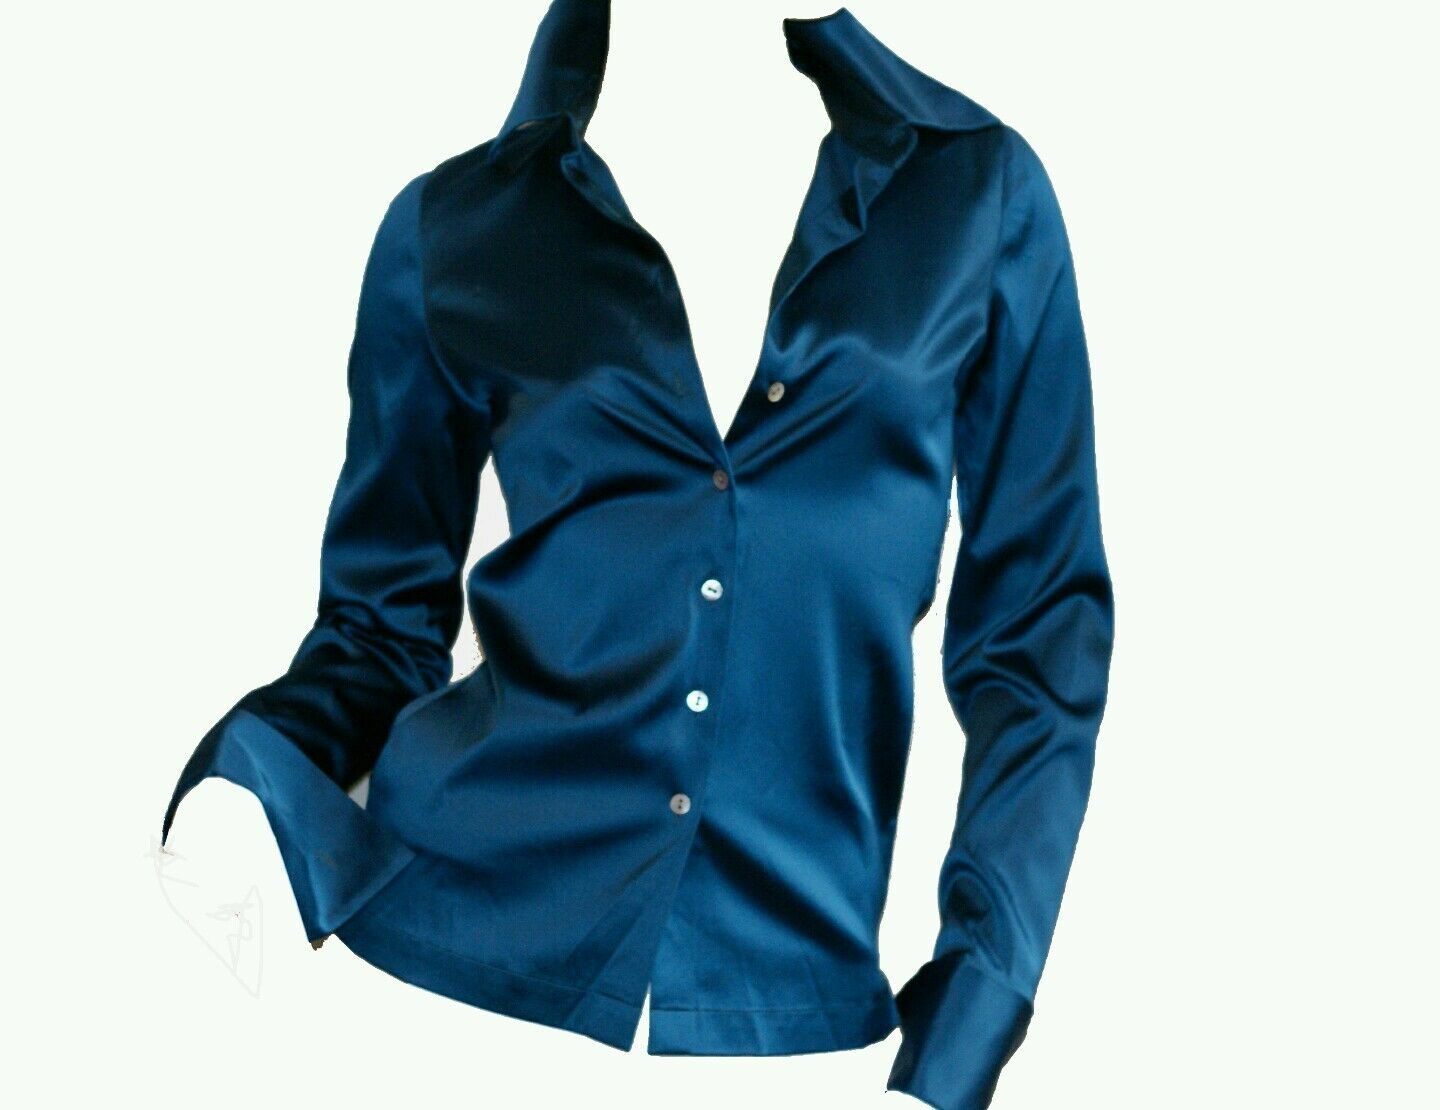 22 momme SILK Charmeuse Blouse Button LongSleeve FrenchCuff solid Blau Med 6 8